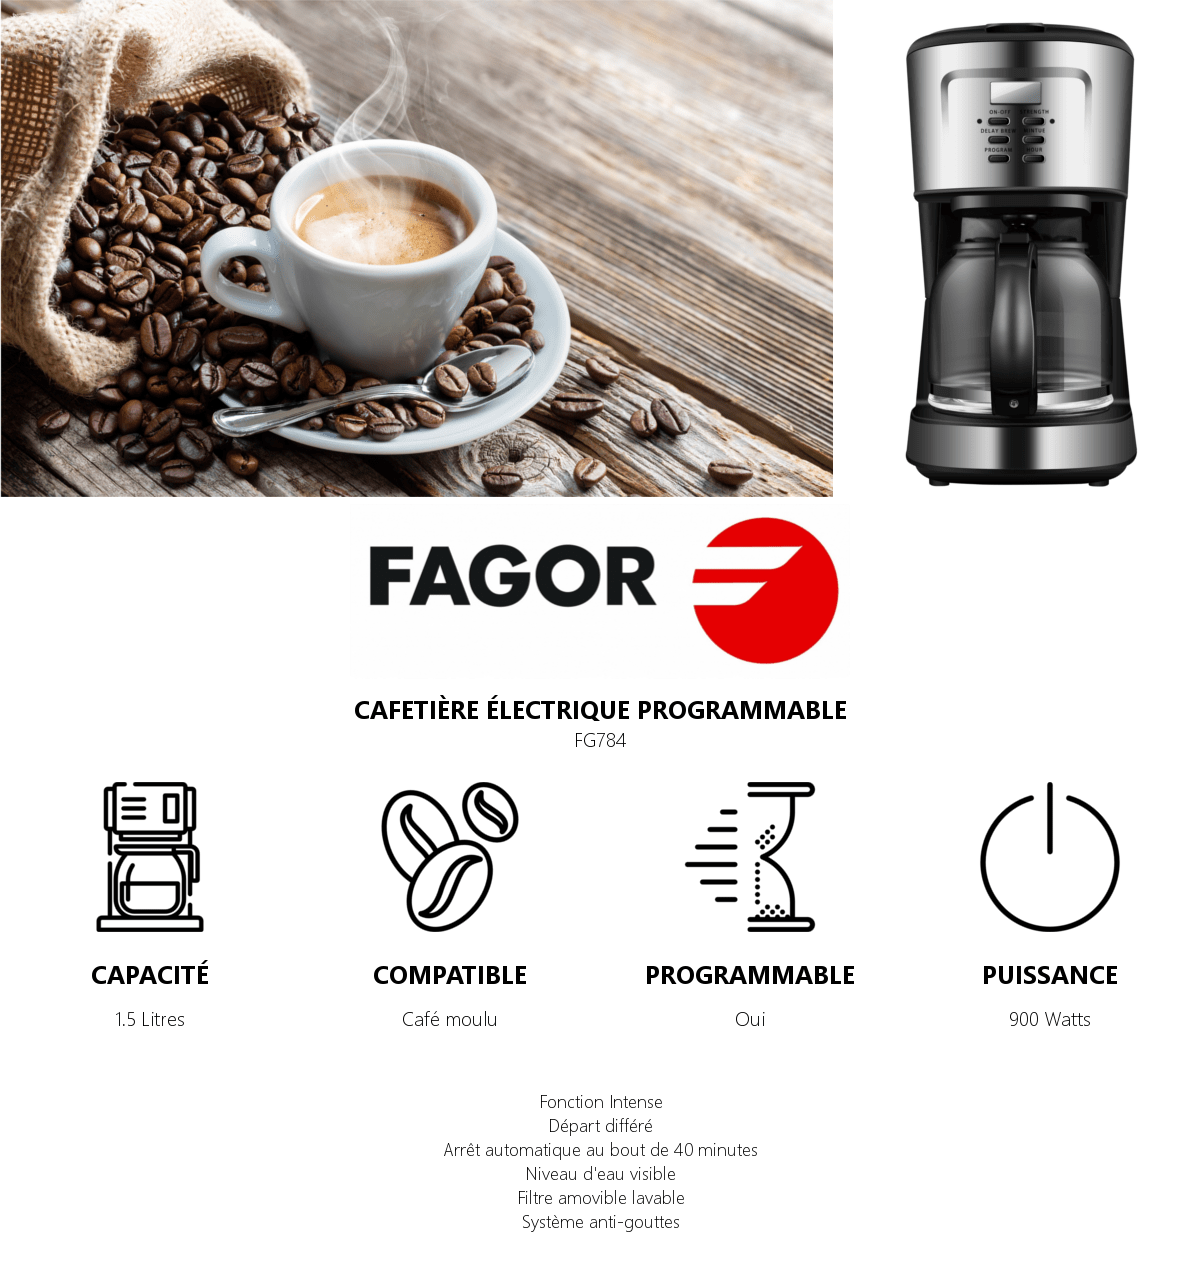 fagor fg748 cafetiere programmable